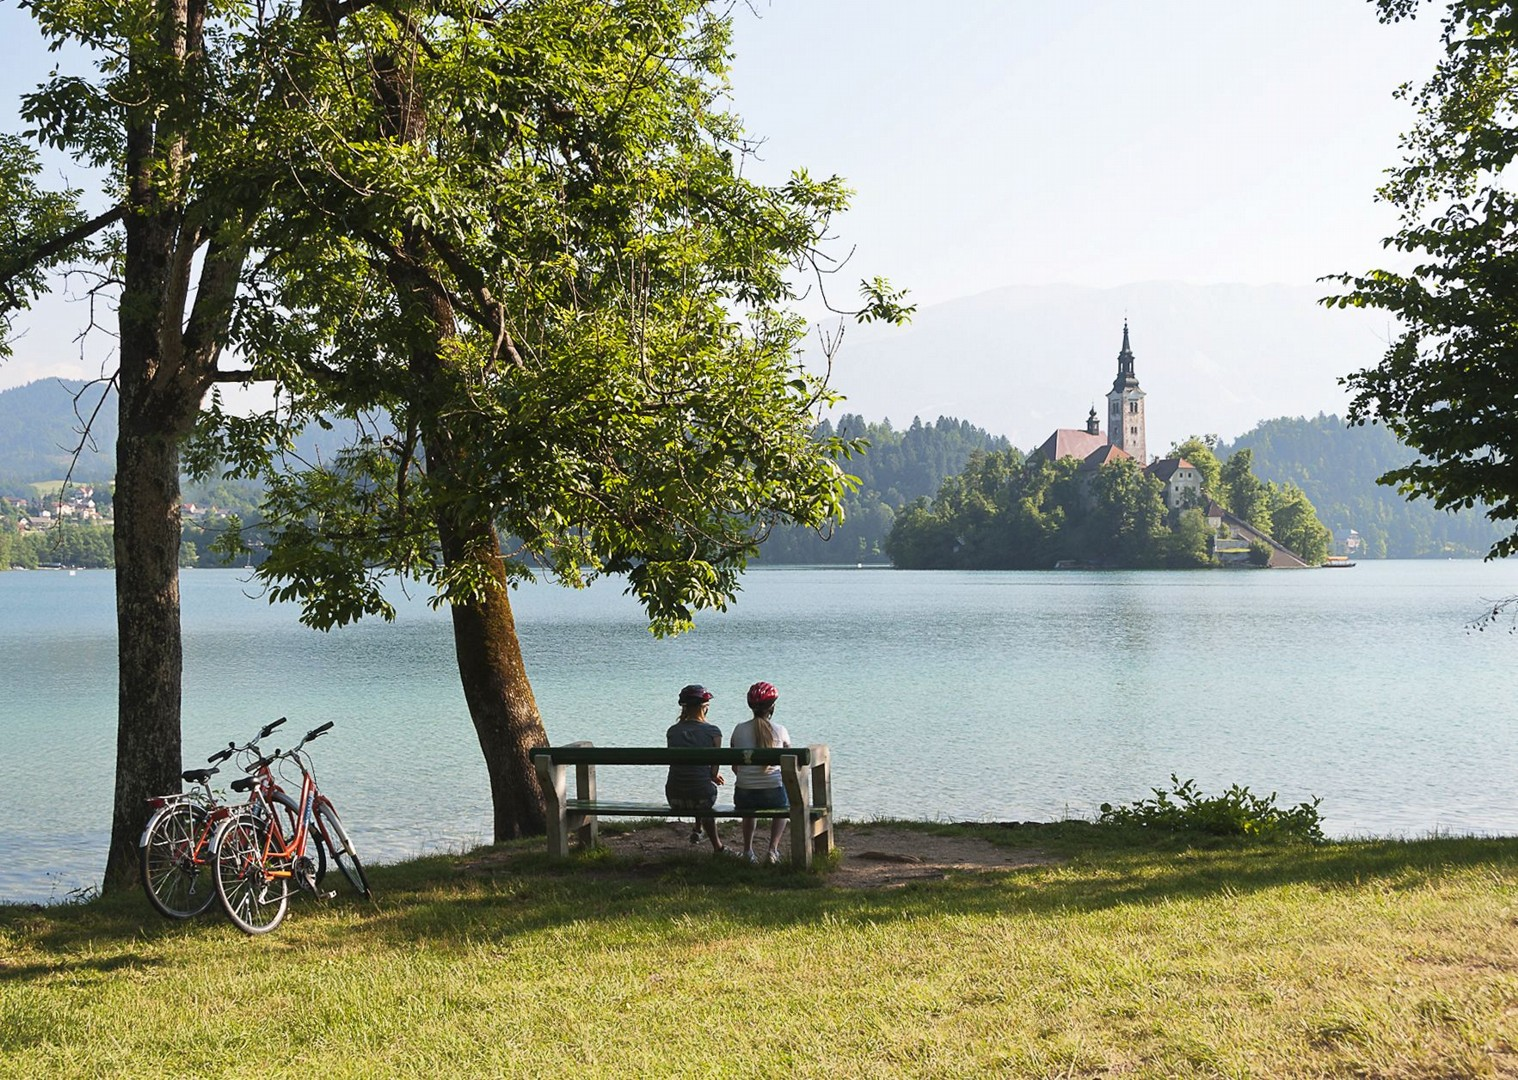 pokljuka-slovenia-magical-lake-bled-self-guided-family-cycling-holiday.jpg - Slovenia - Magical Lake Bled - Self-Guided Family Cycling Holiday - Family Cycling